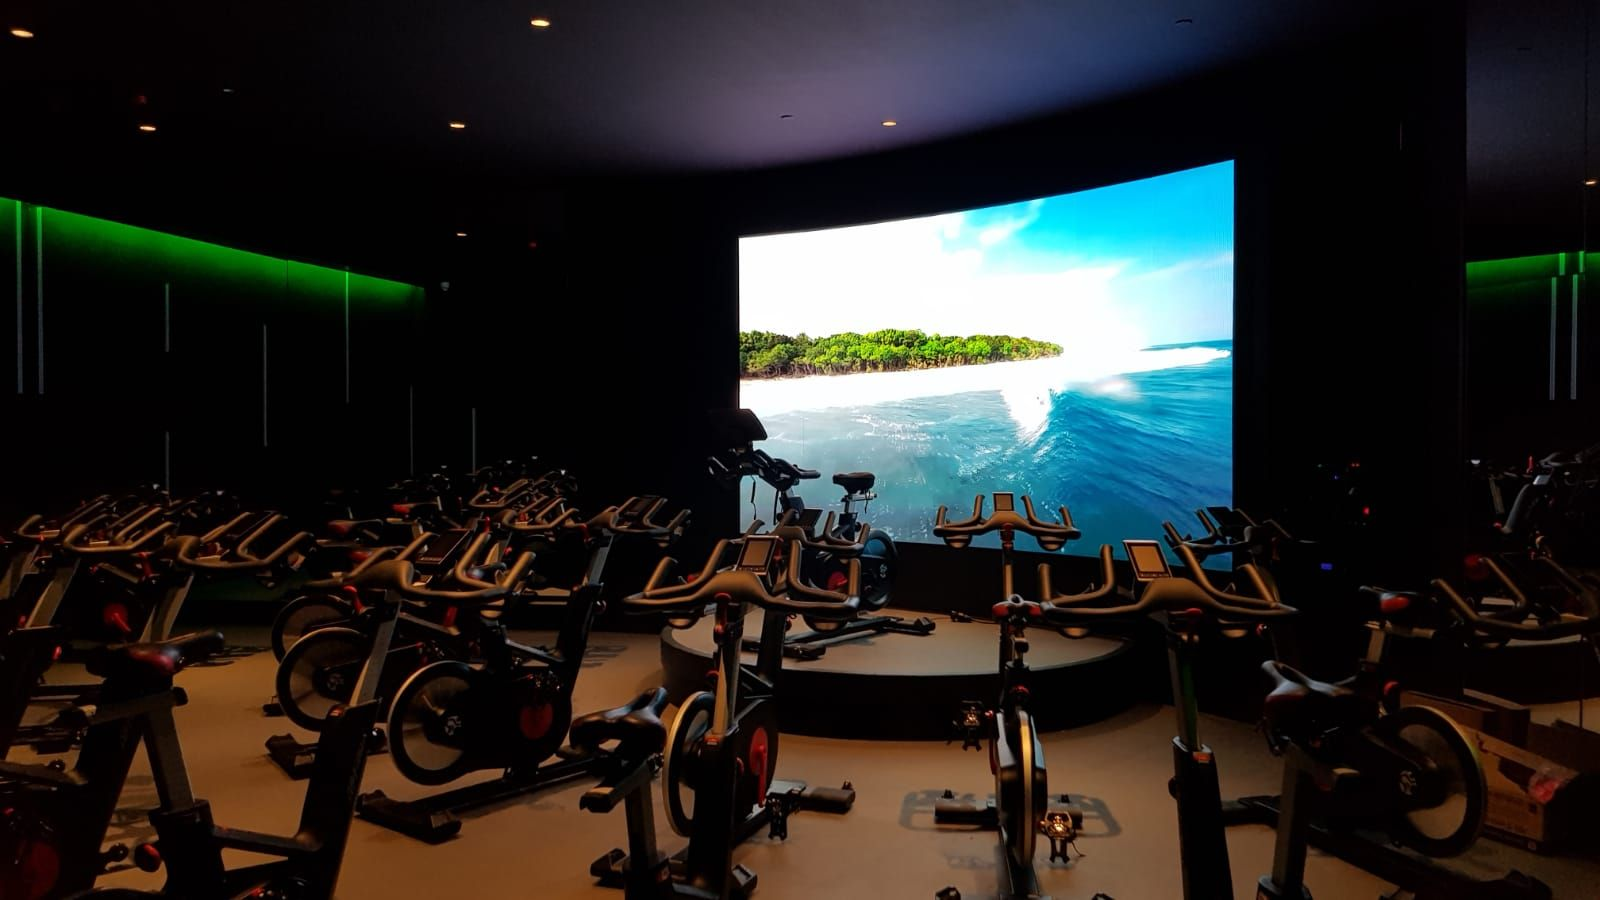 Indoor gym LED wall